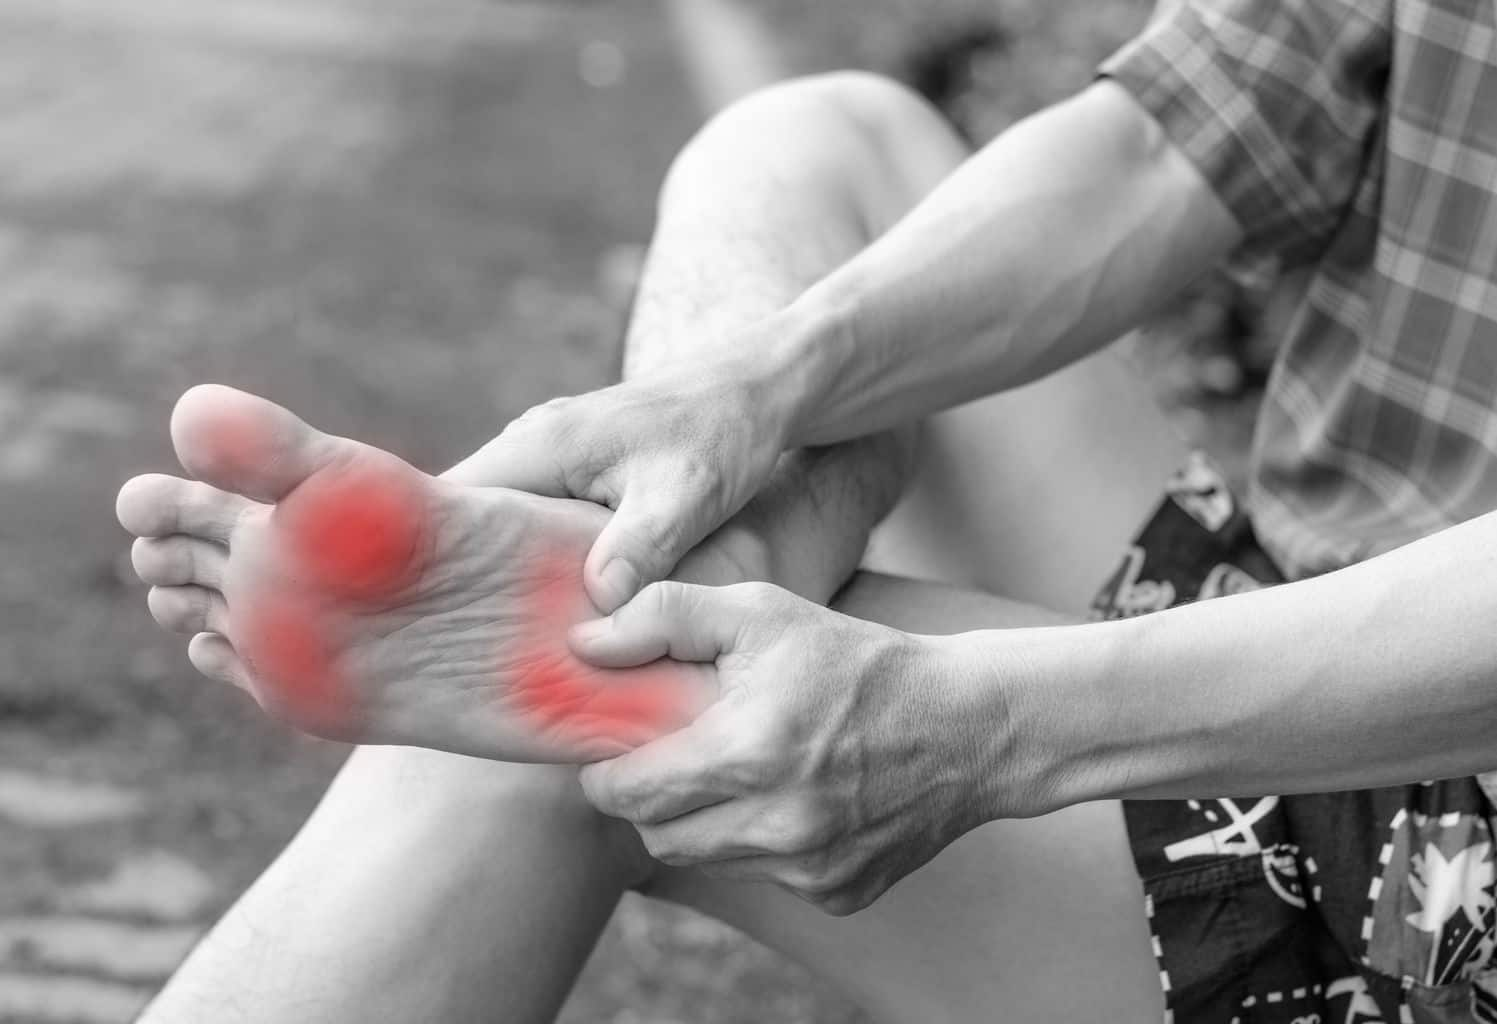 Nitric oxide causes joint destruction in arthritis